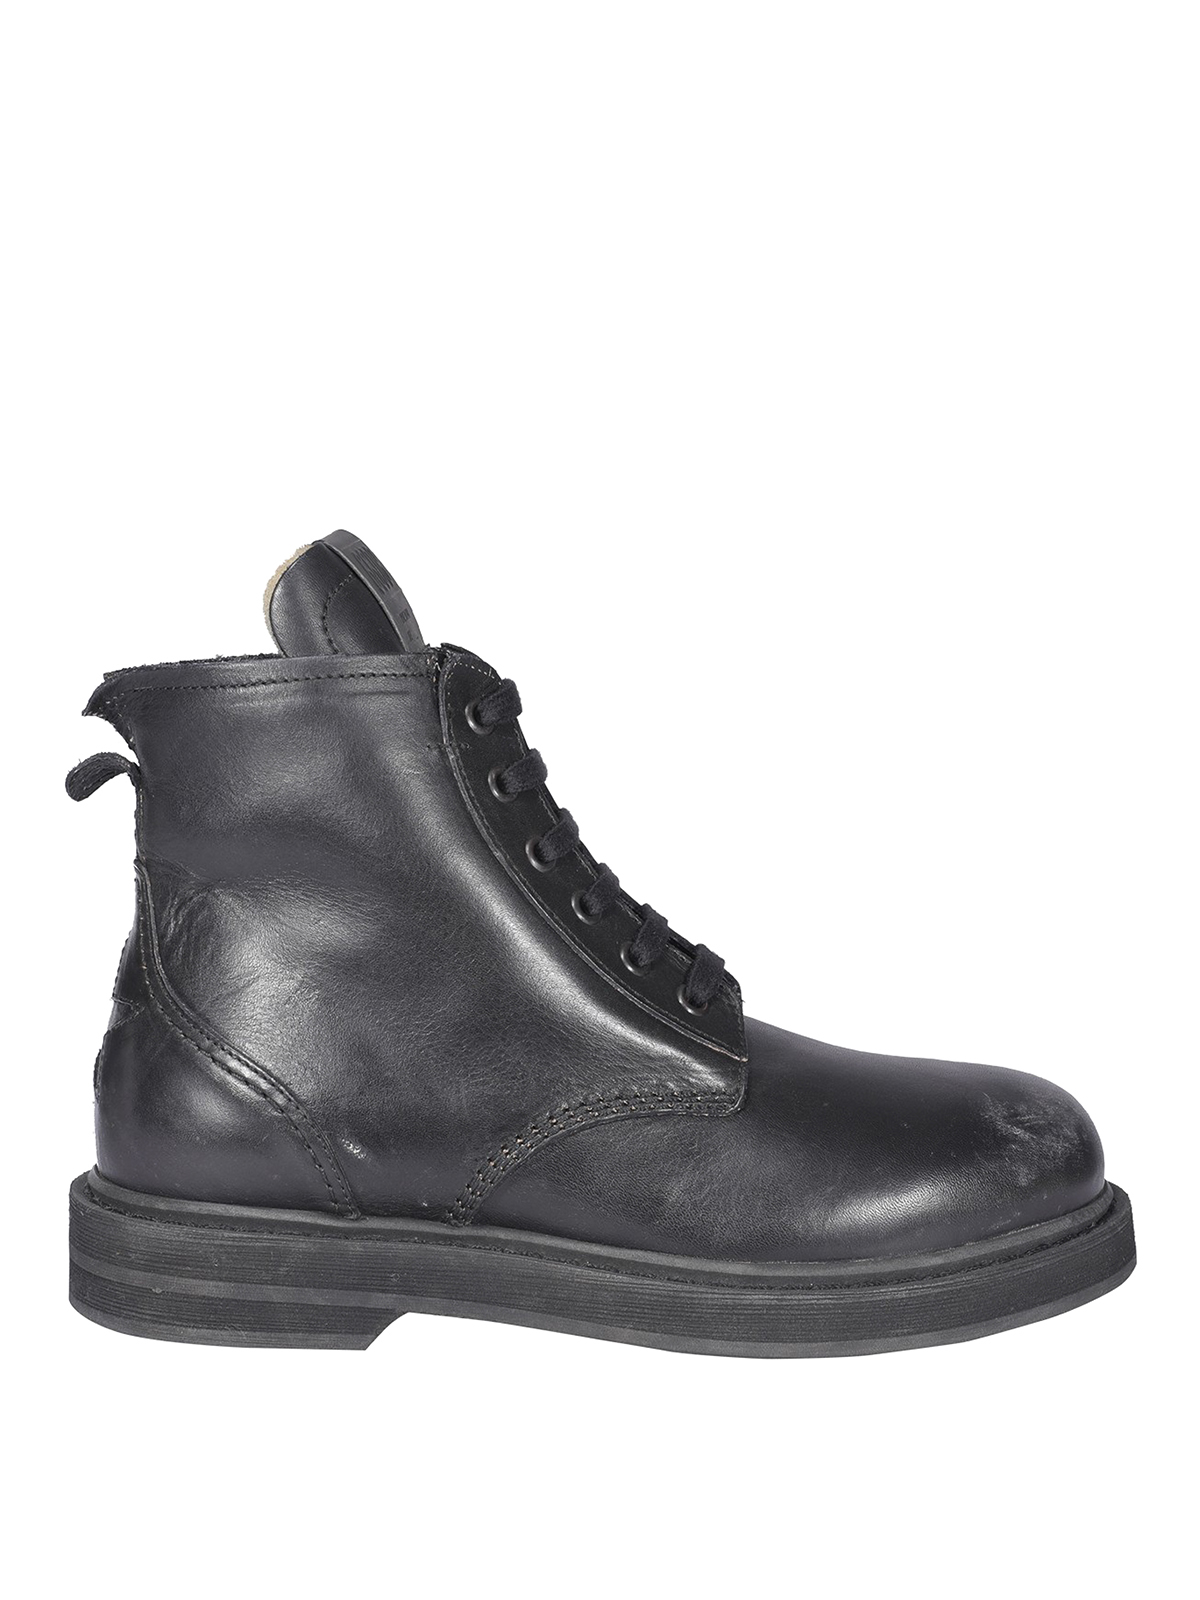 Golden Goose Leathers DISTRESSED EFFECT COMBAT BOOTS